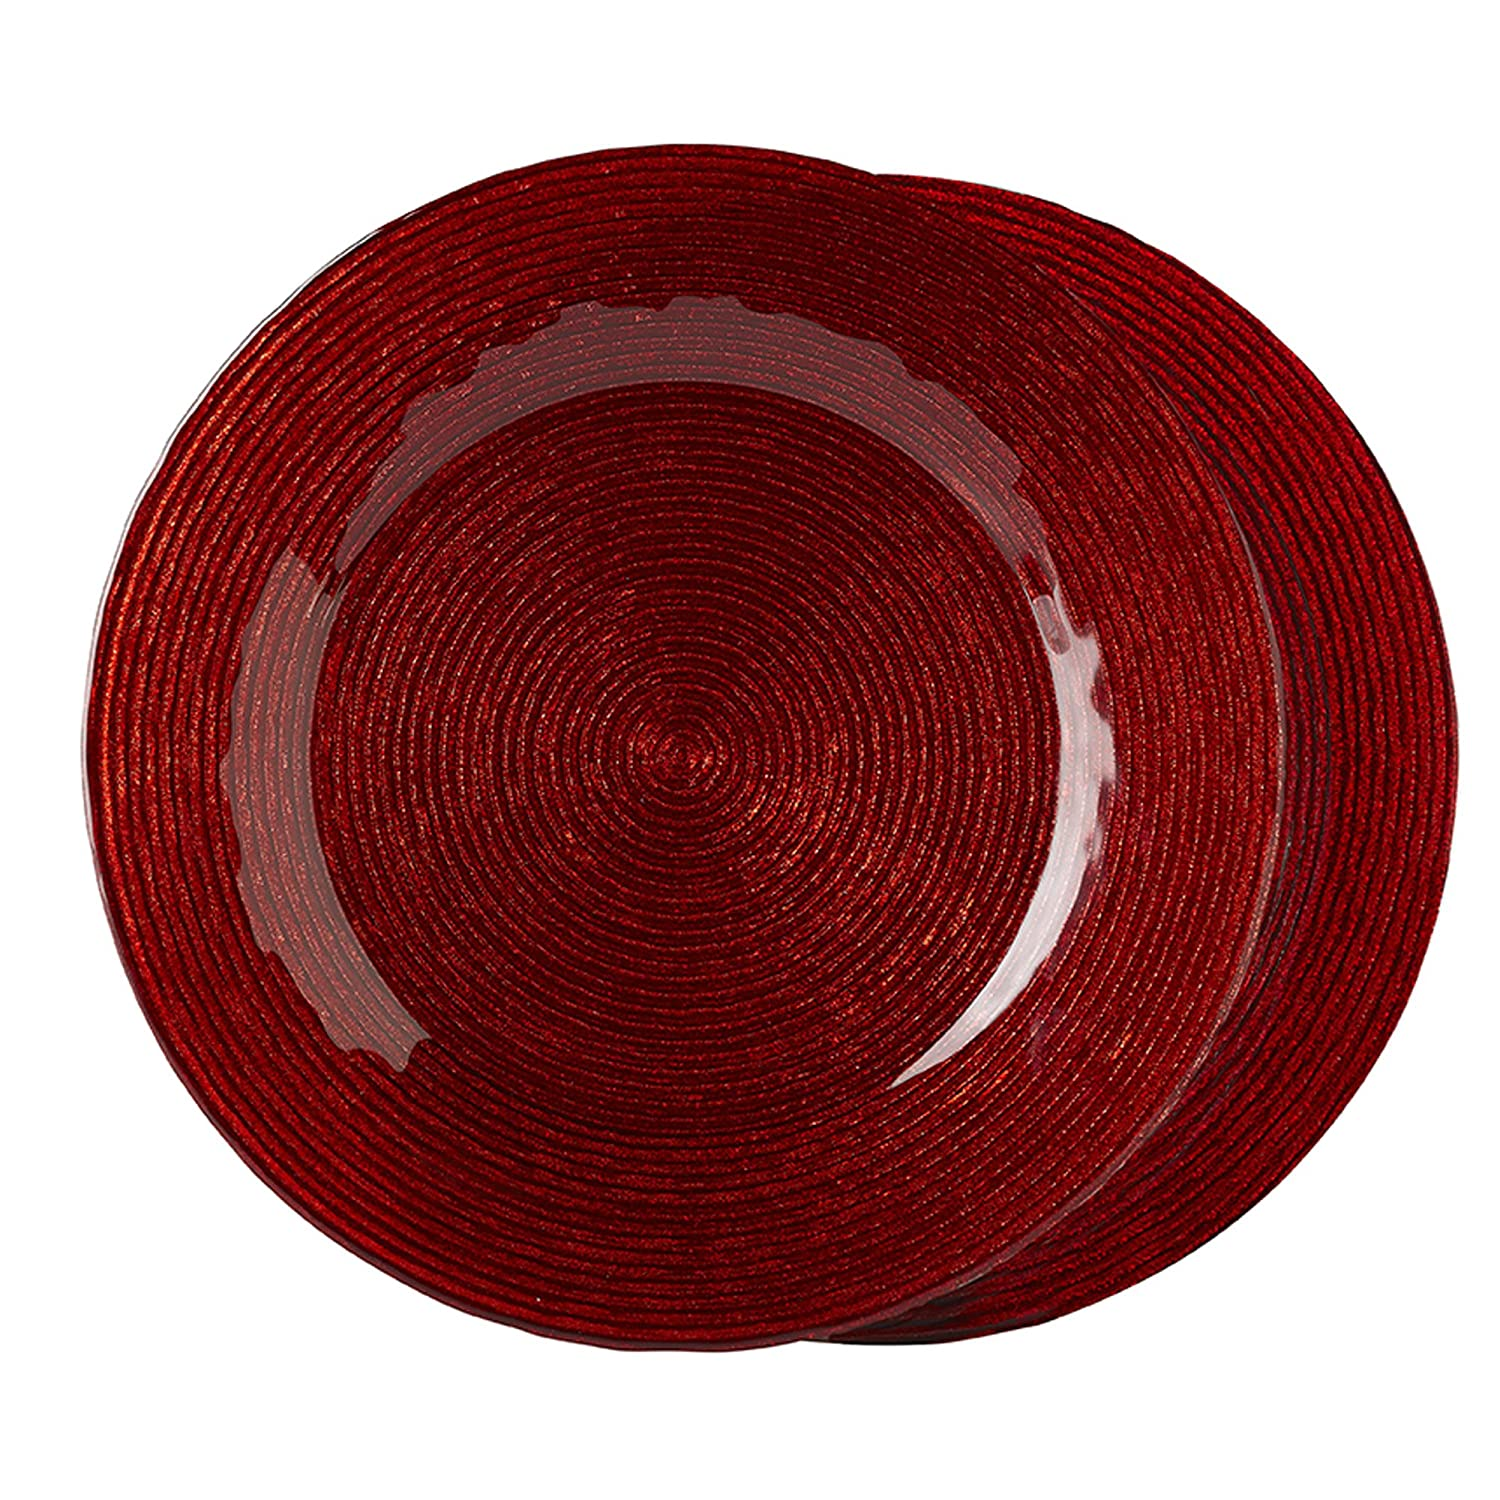 Red Wave Glass Charger Plate Set of 2